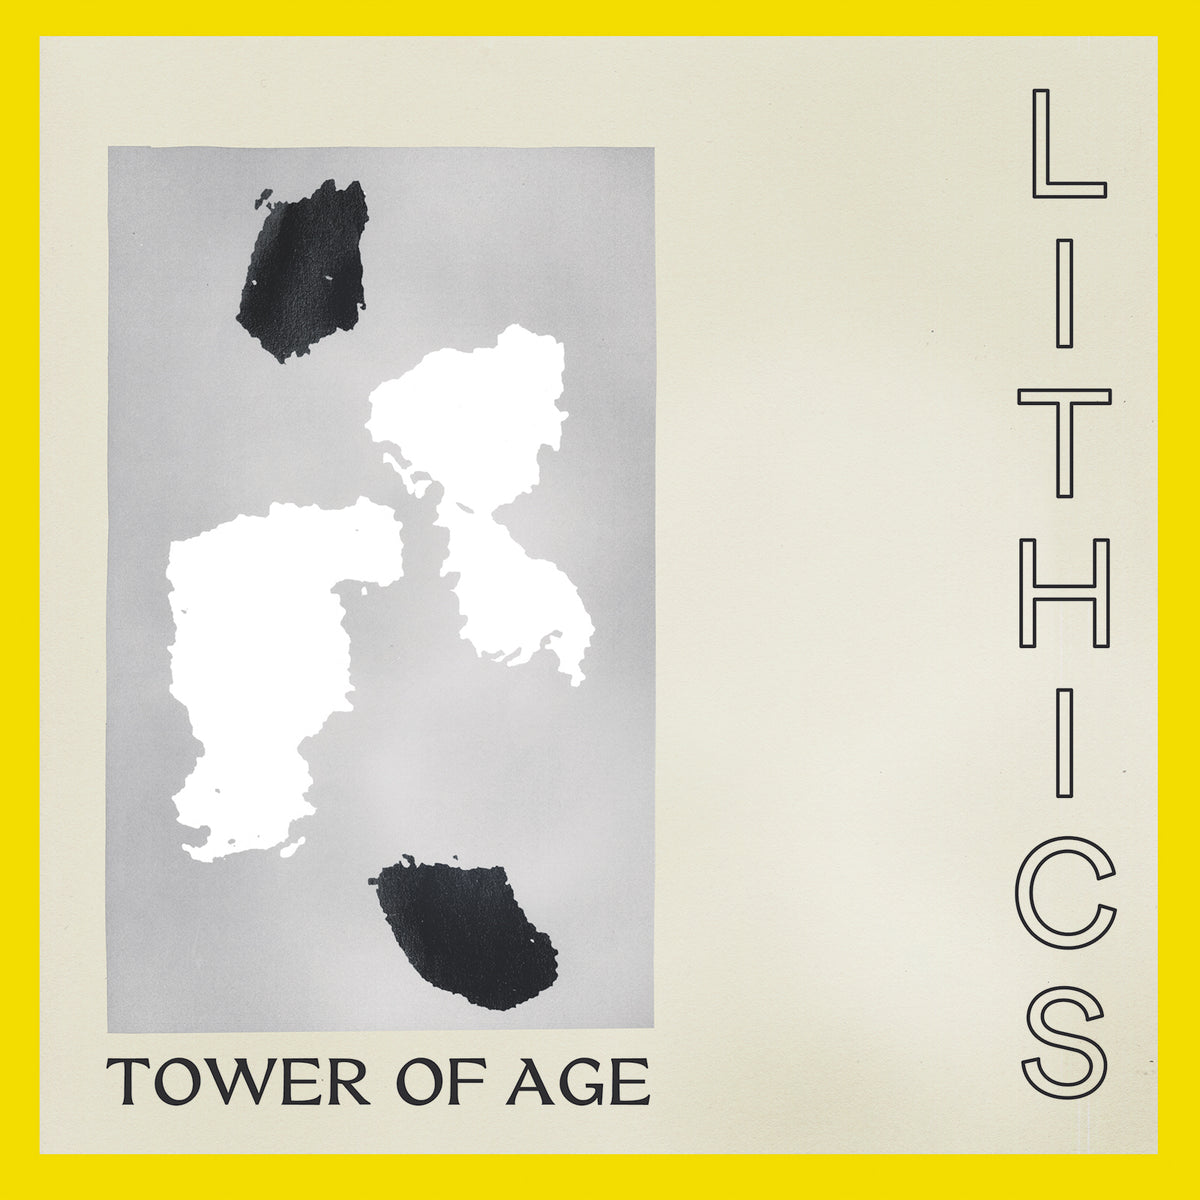 Lithics - Tower of Age